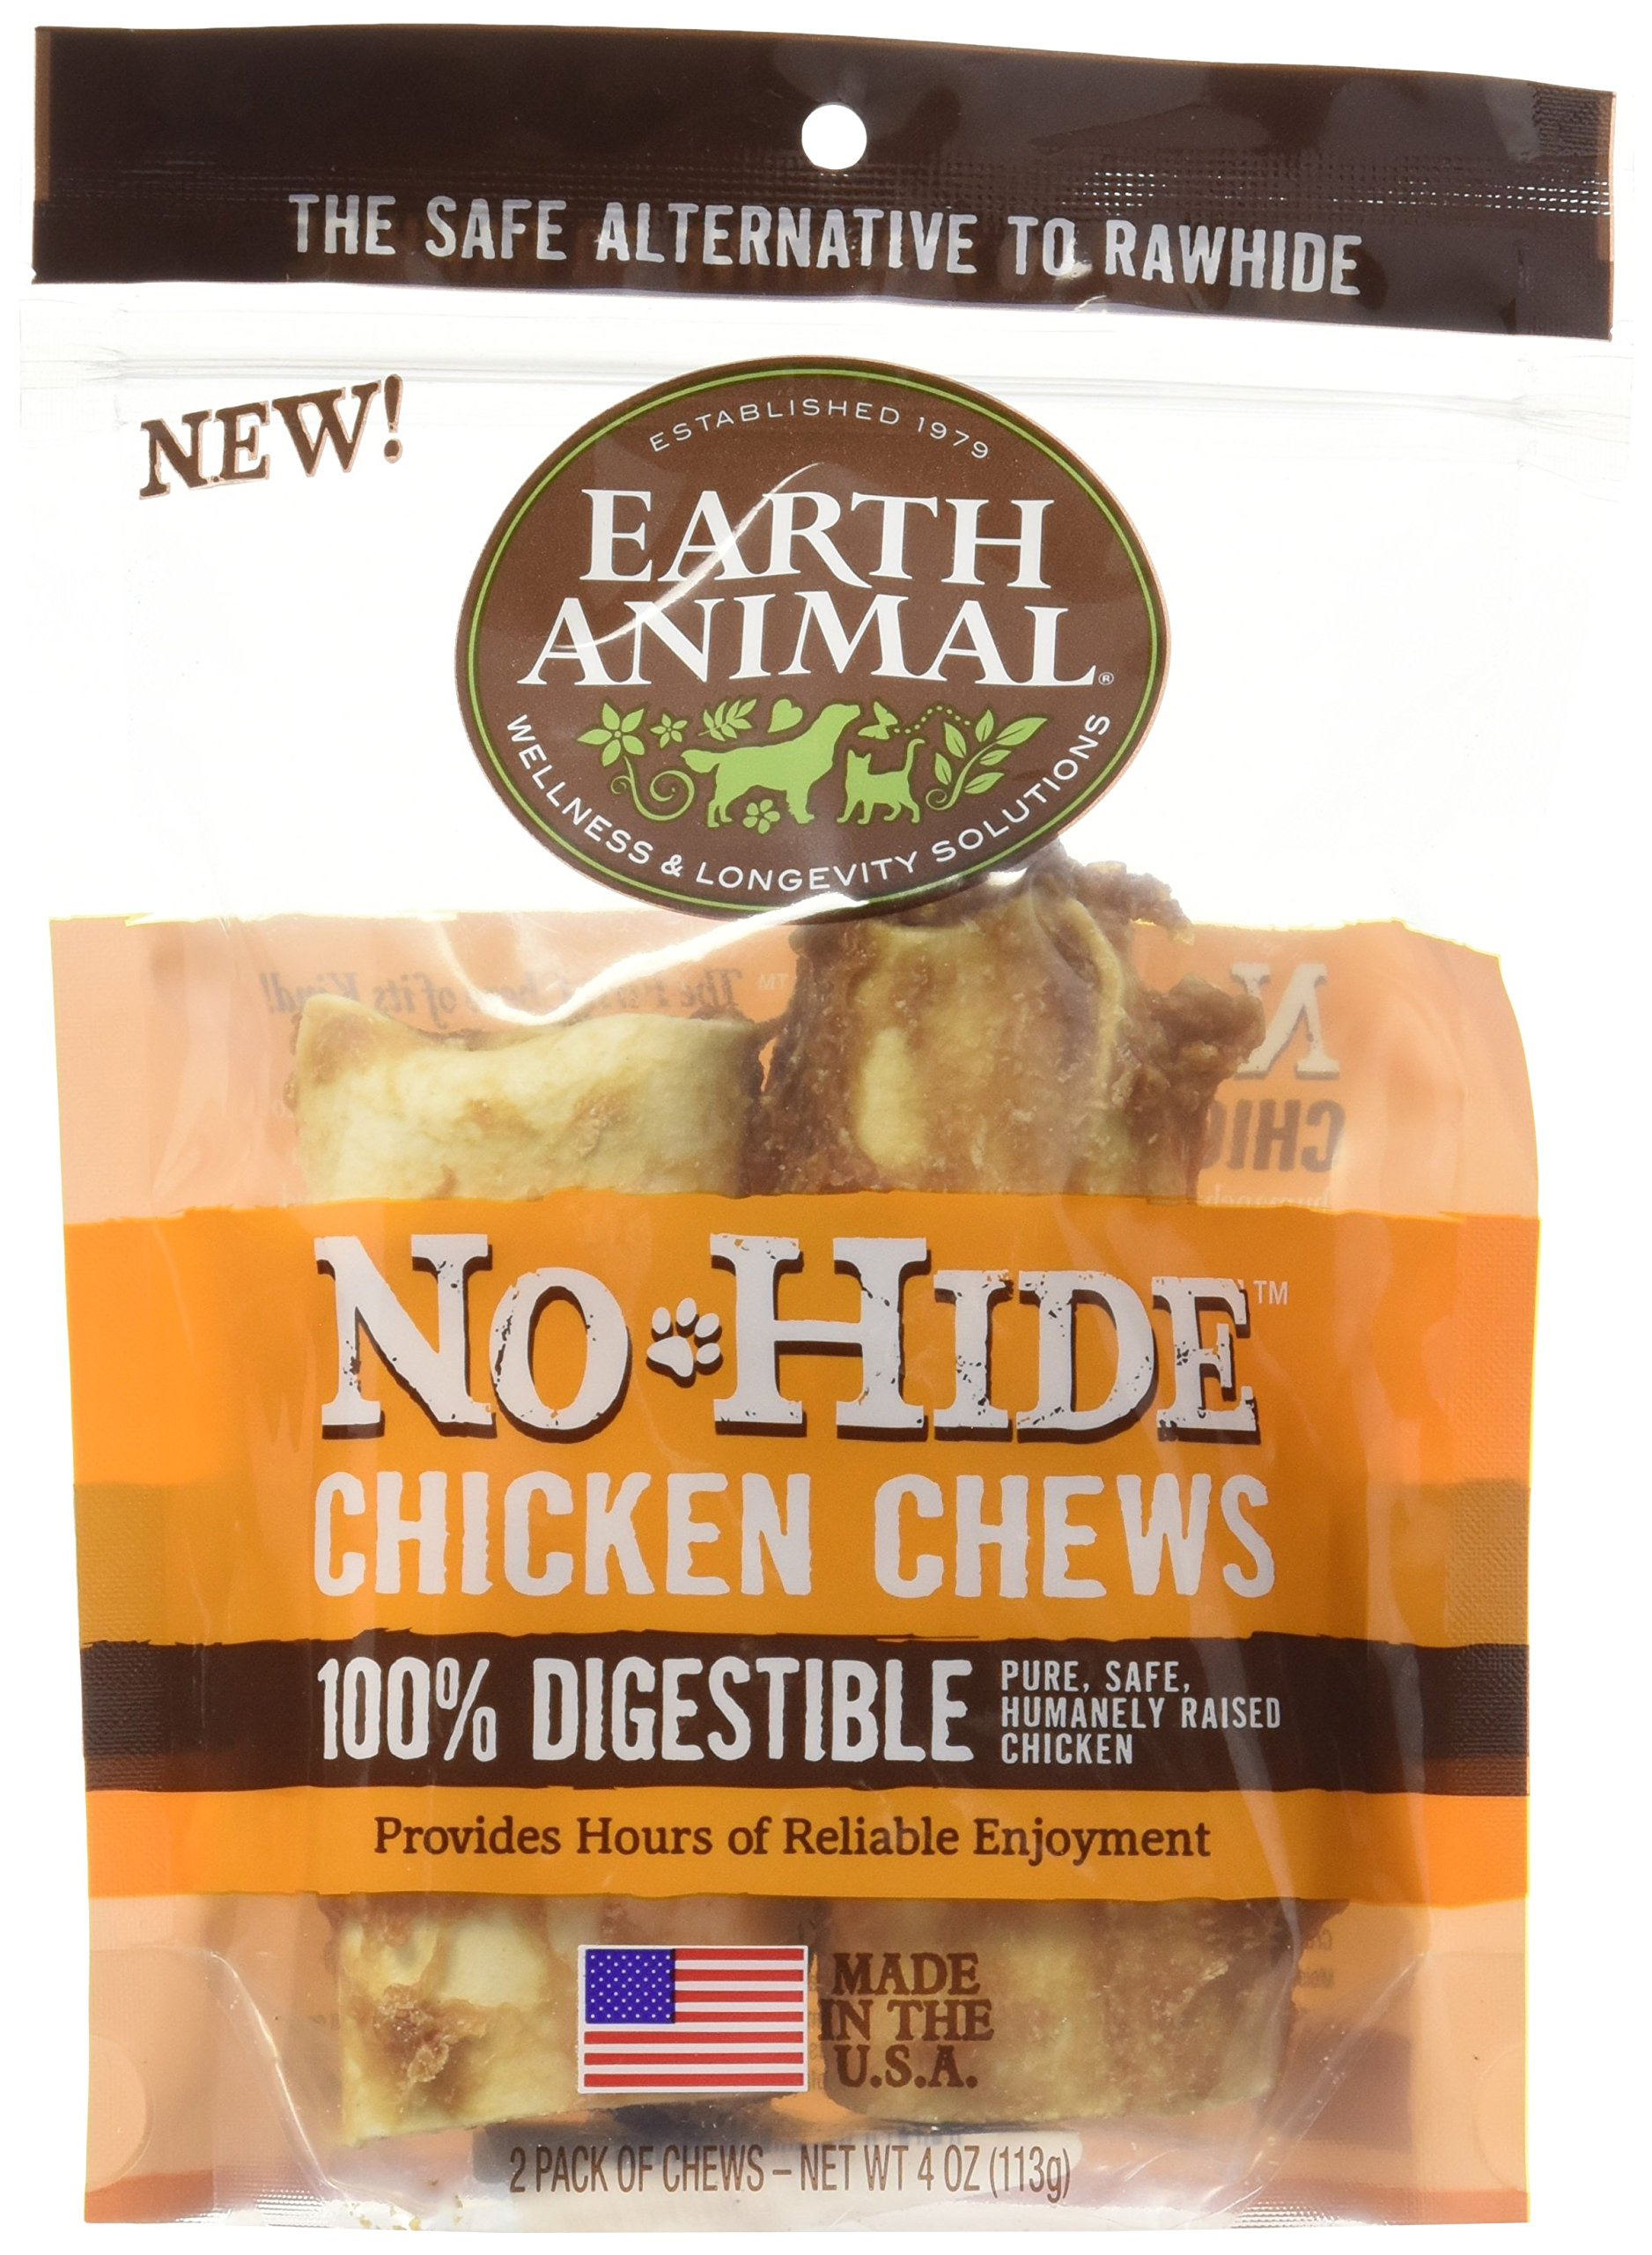 Earth Animal NoHide Chicken Chews 2 Pack (4 oz) by No-Hide Chicken Chews (Image #1)